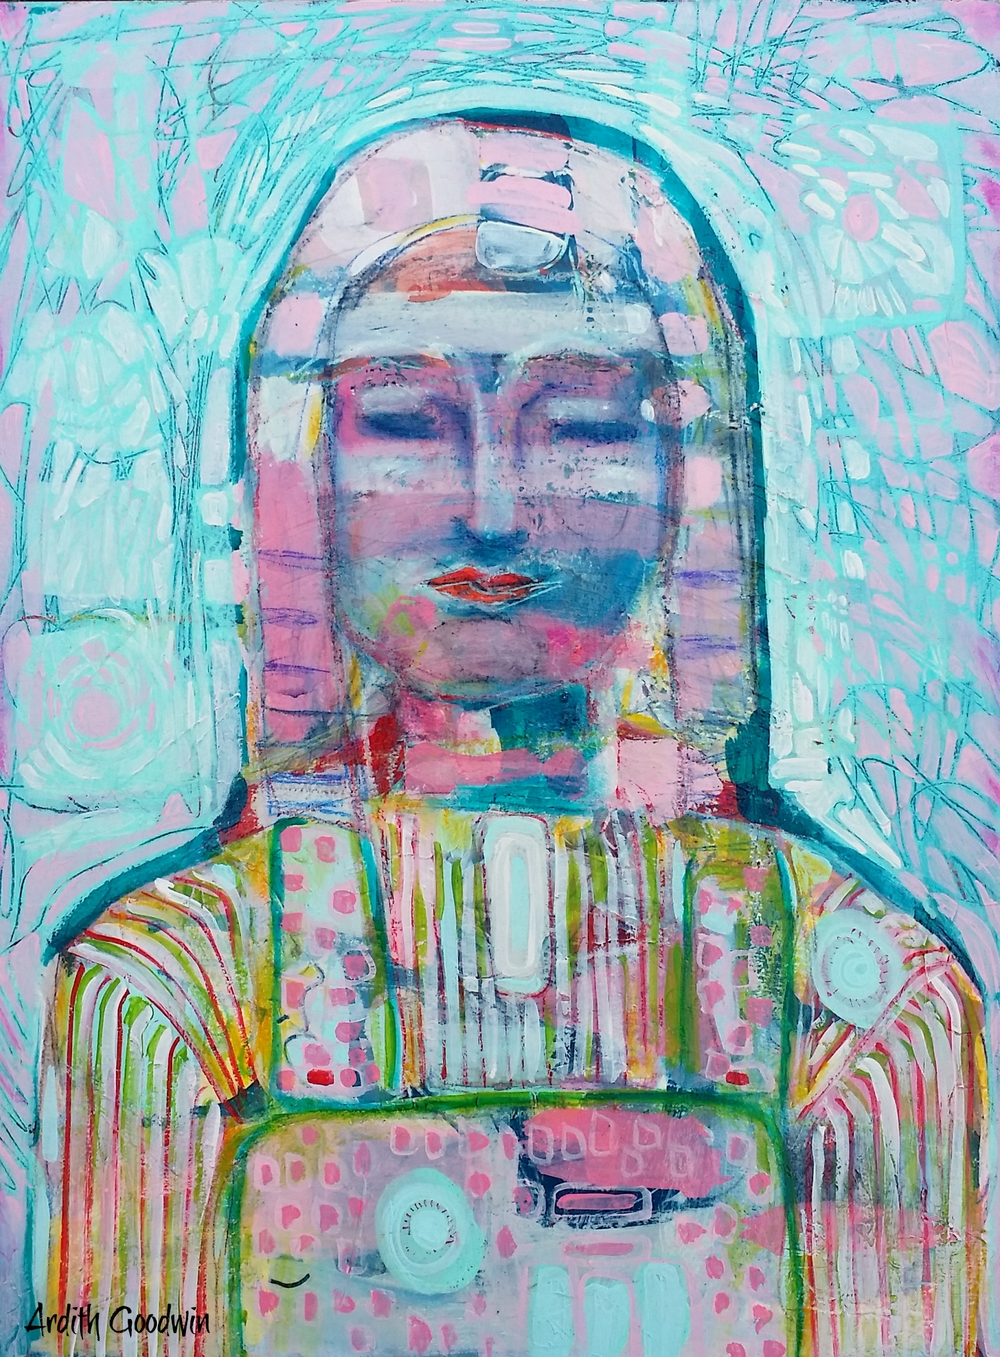 She Whispers Pink Prayers by Ardith Goodwin